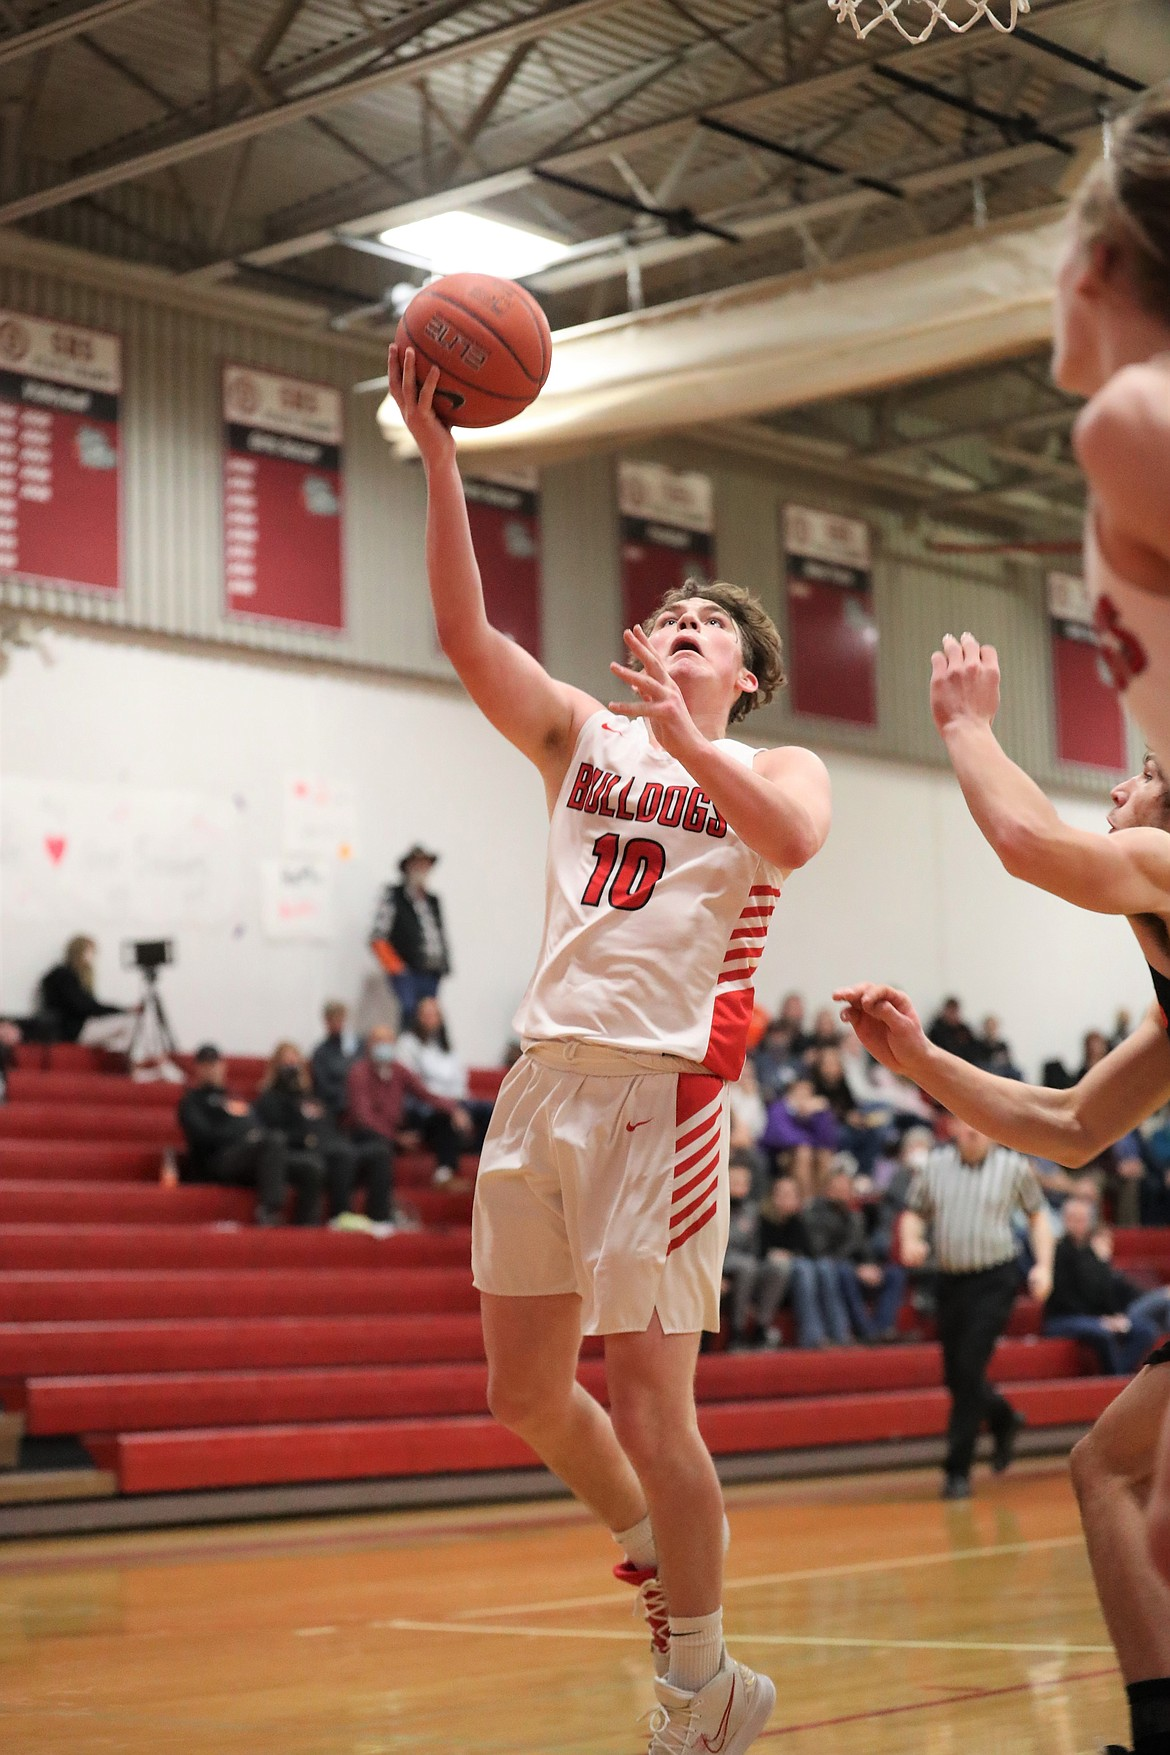 Arie VanDenBerg attempts to hit a layup during the fourth quarter of Wednesday's game.